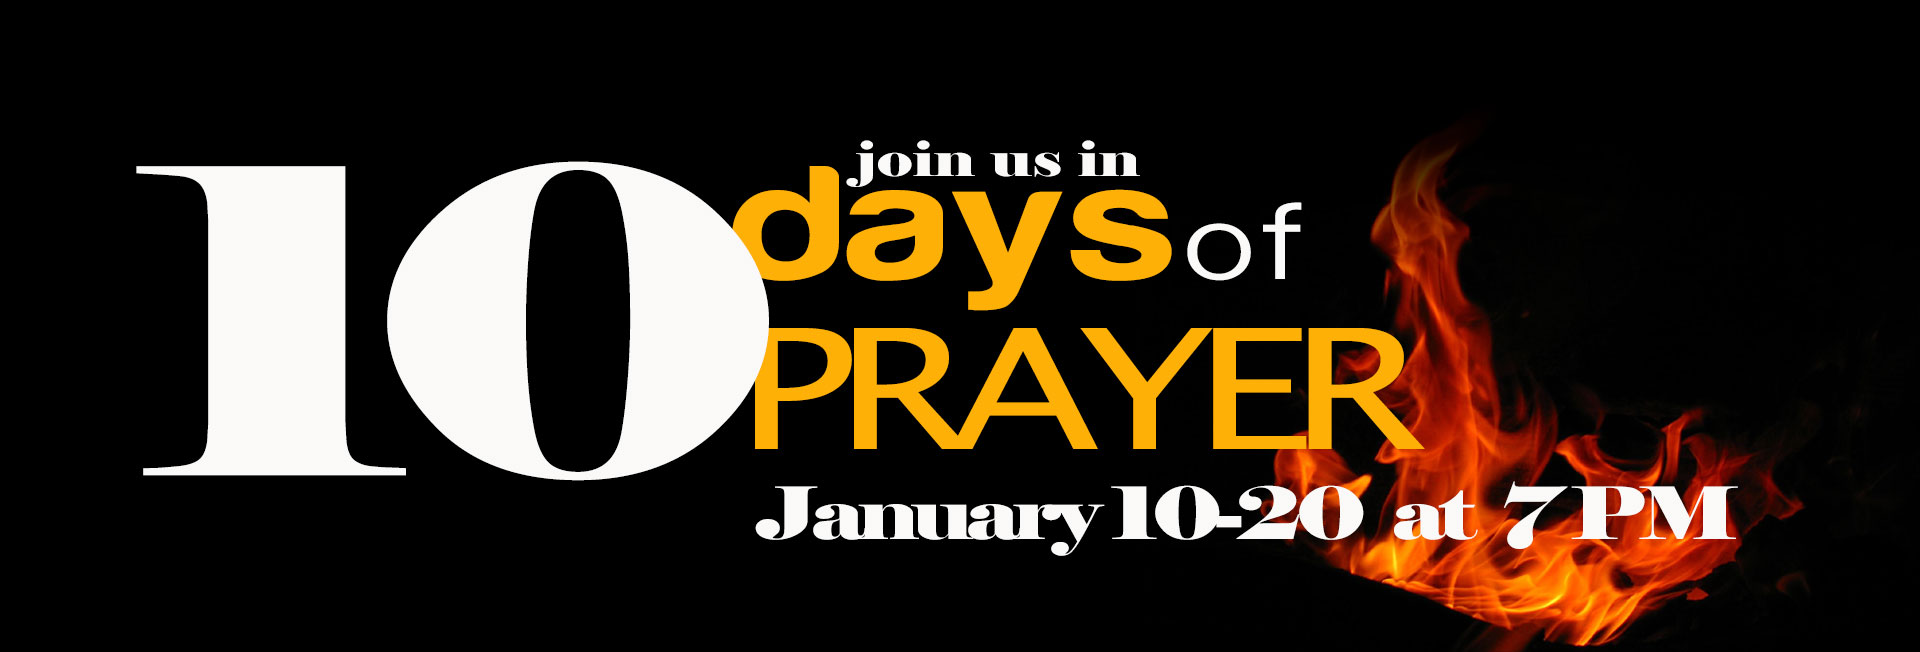 10 Days of Prayer -- January 10-20 at 7 PM